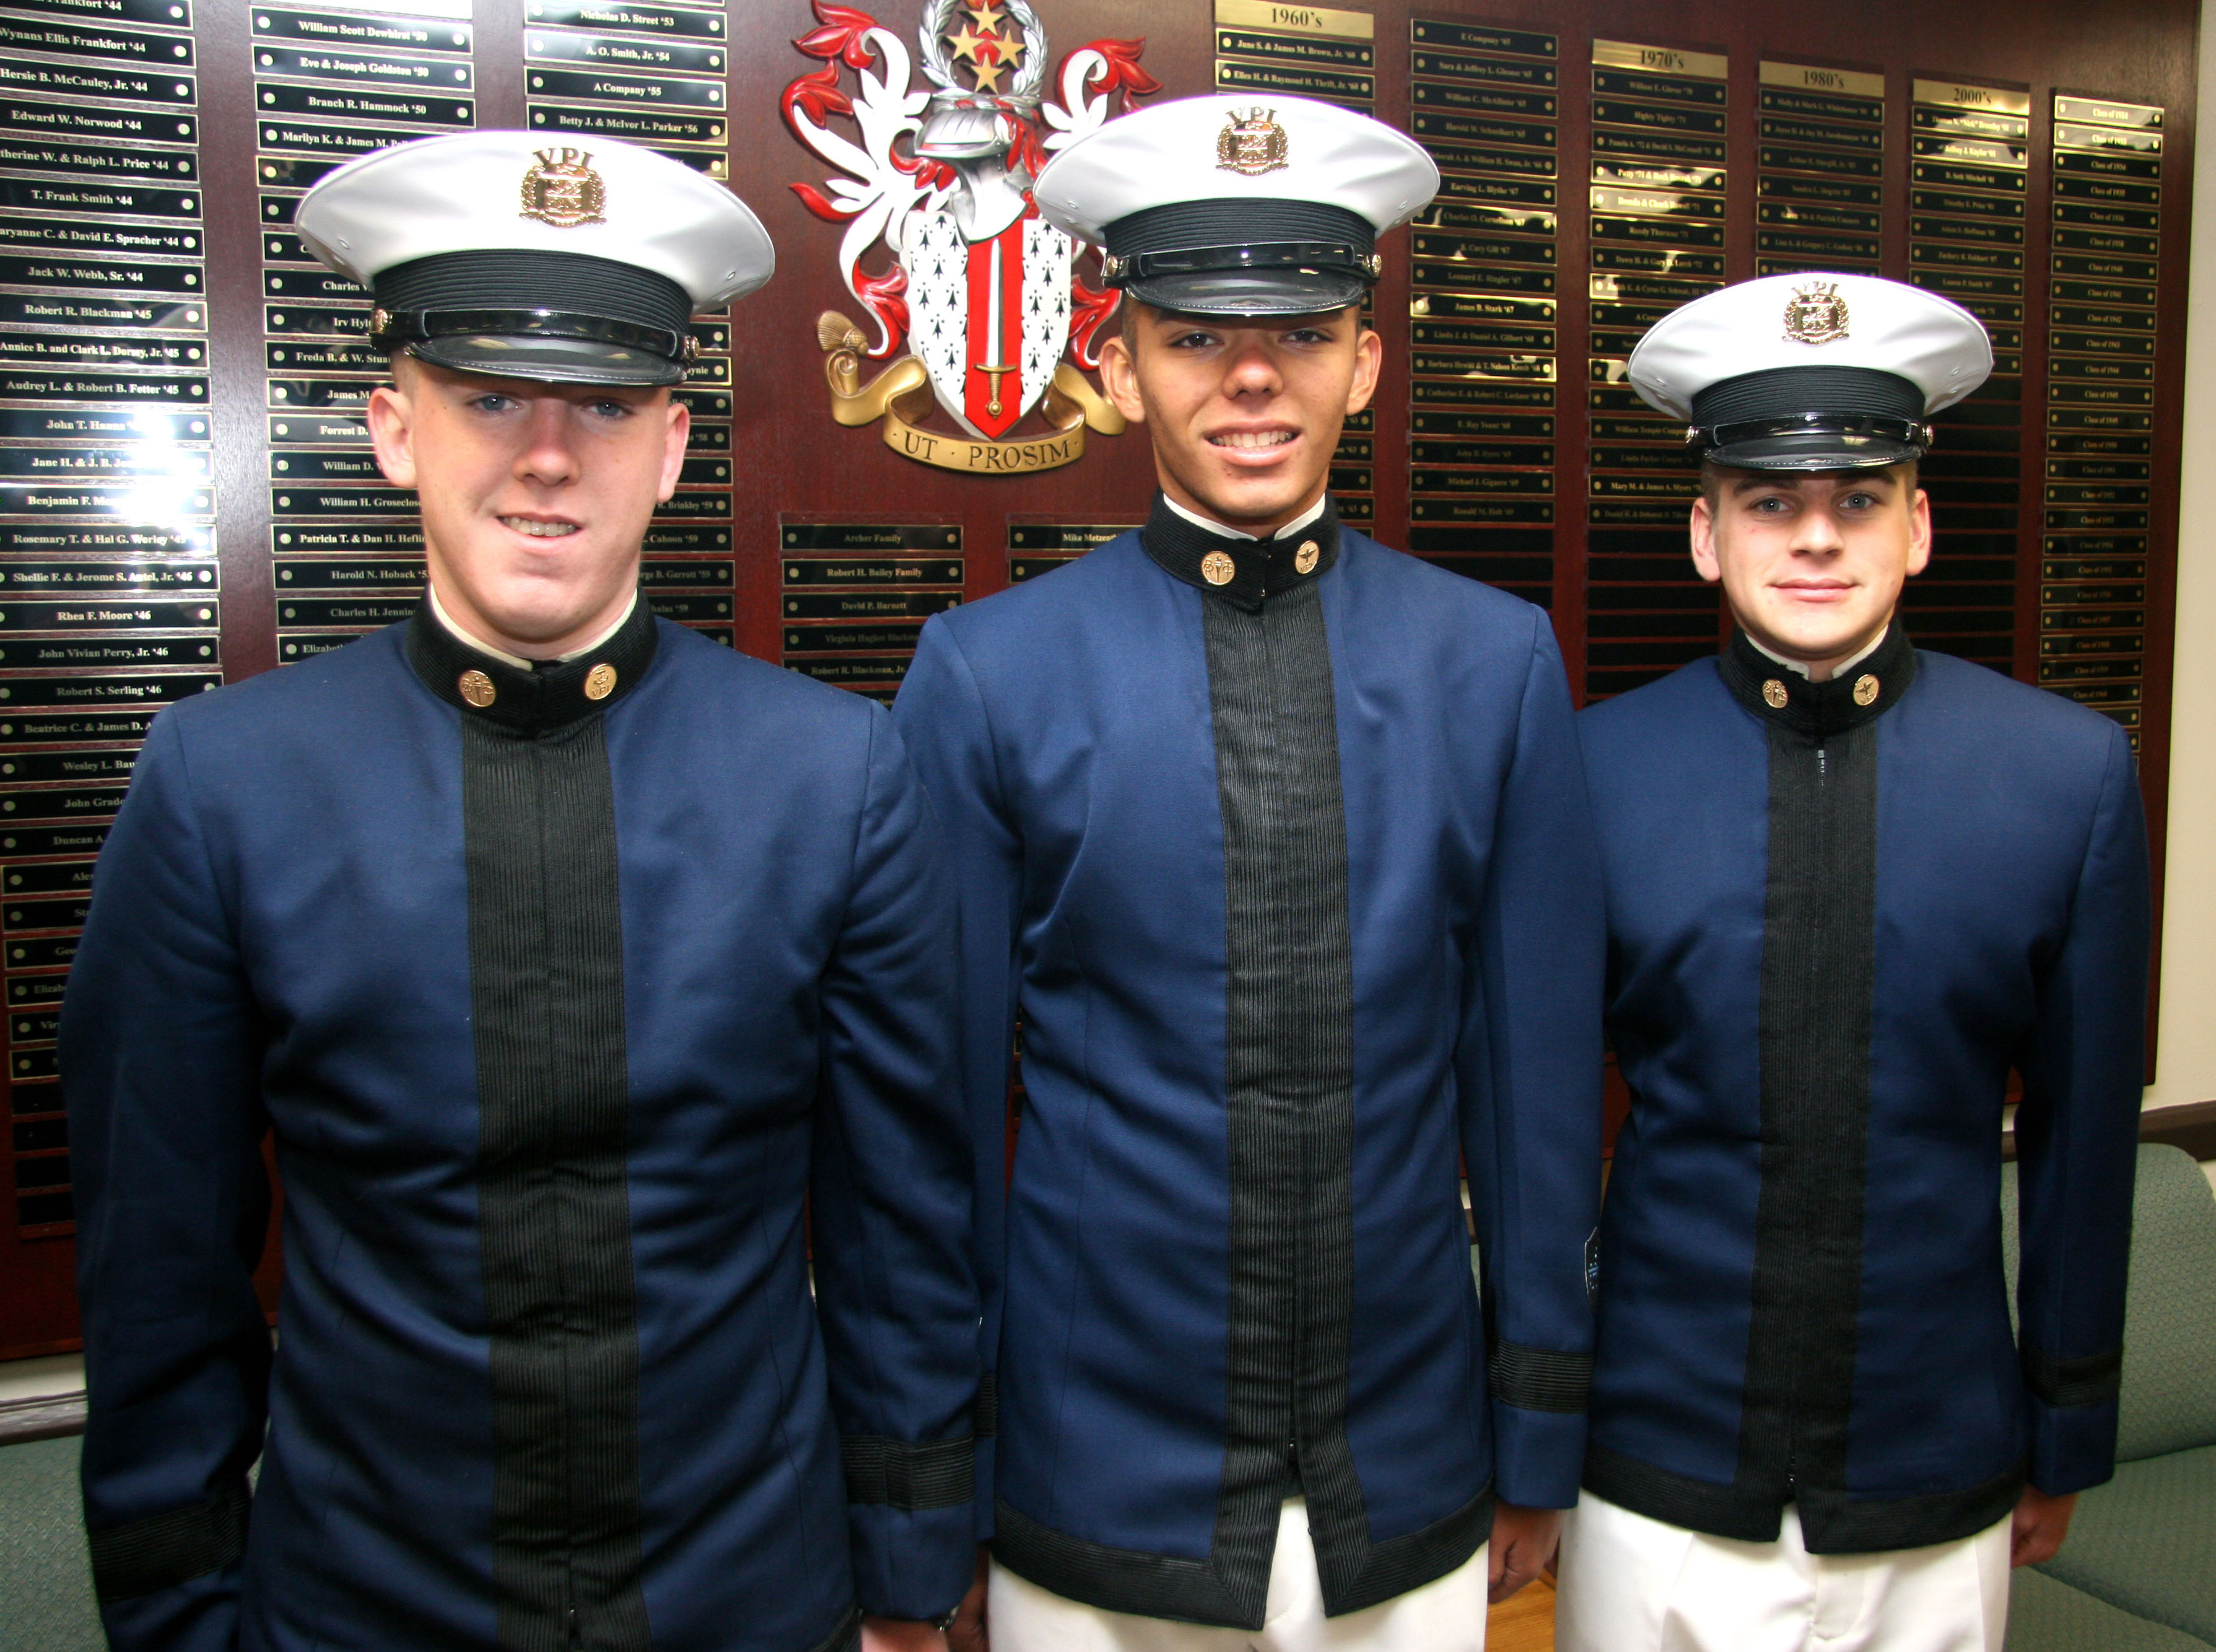 From left to right are Cadets Evan Glynn, Zachary Baranek, and Tyler Wallis